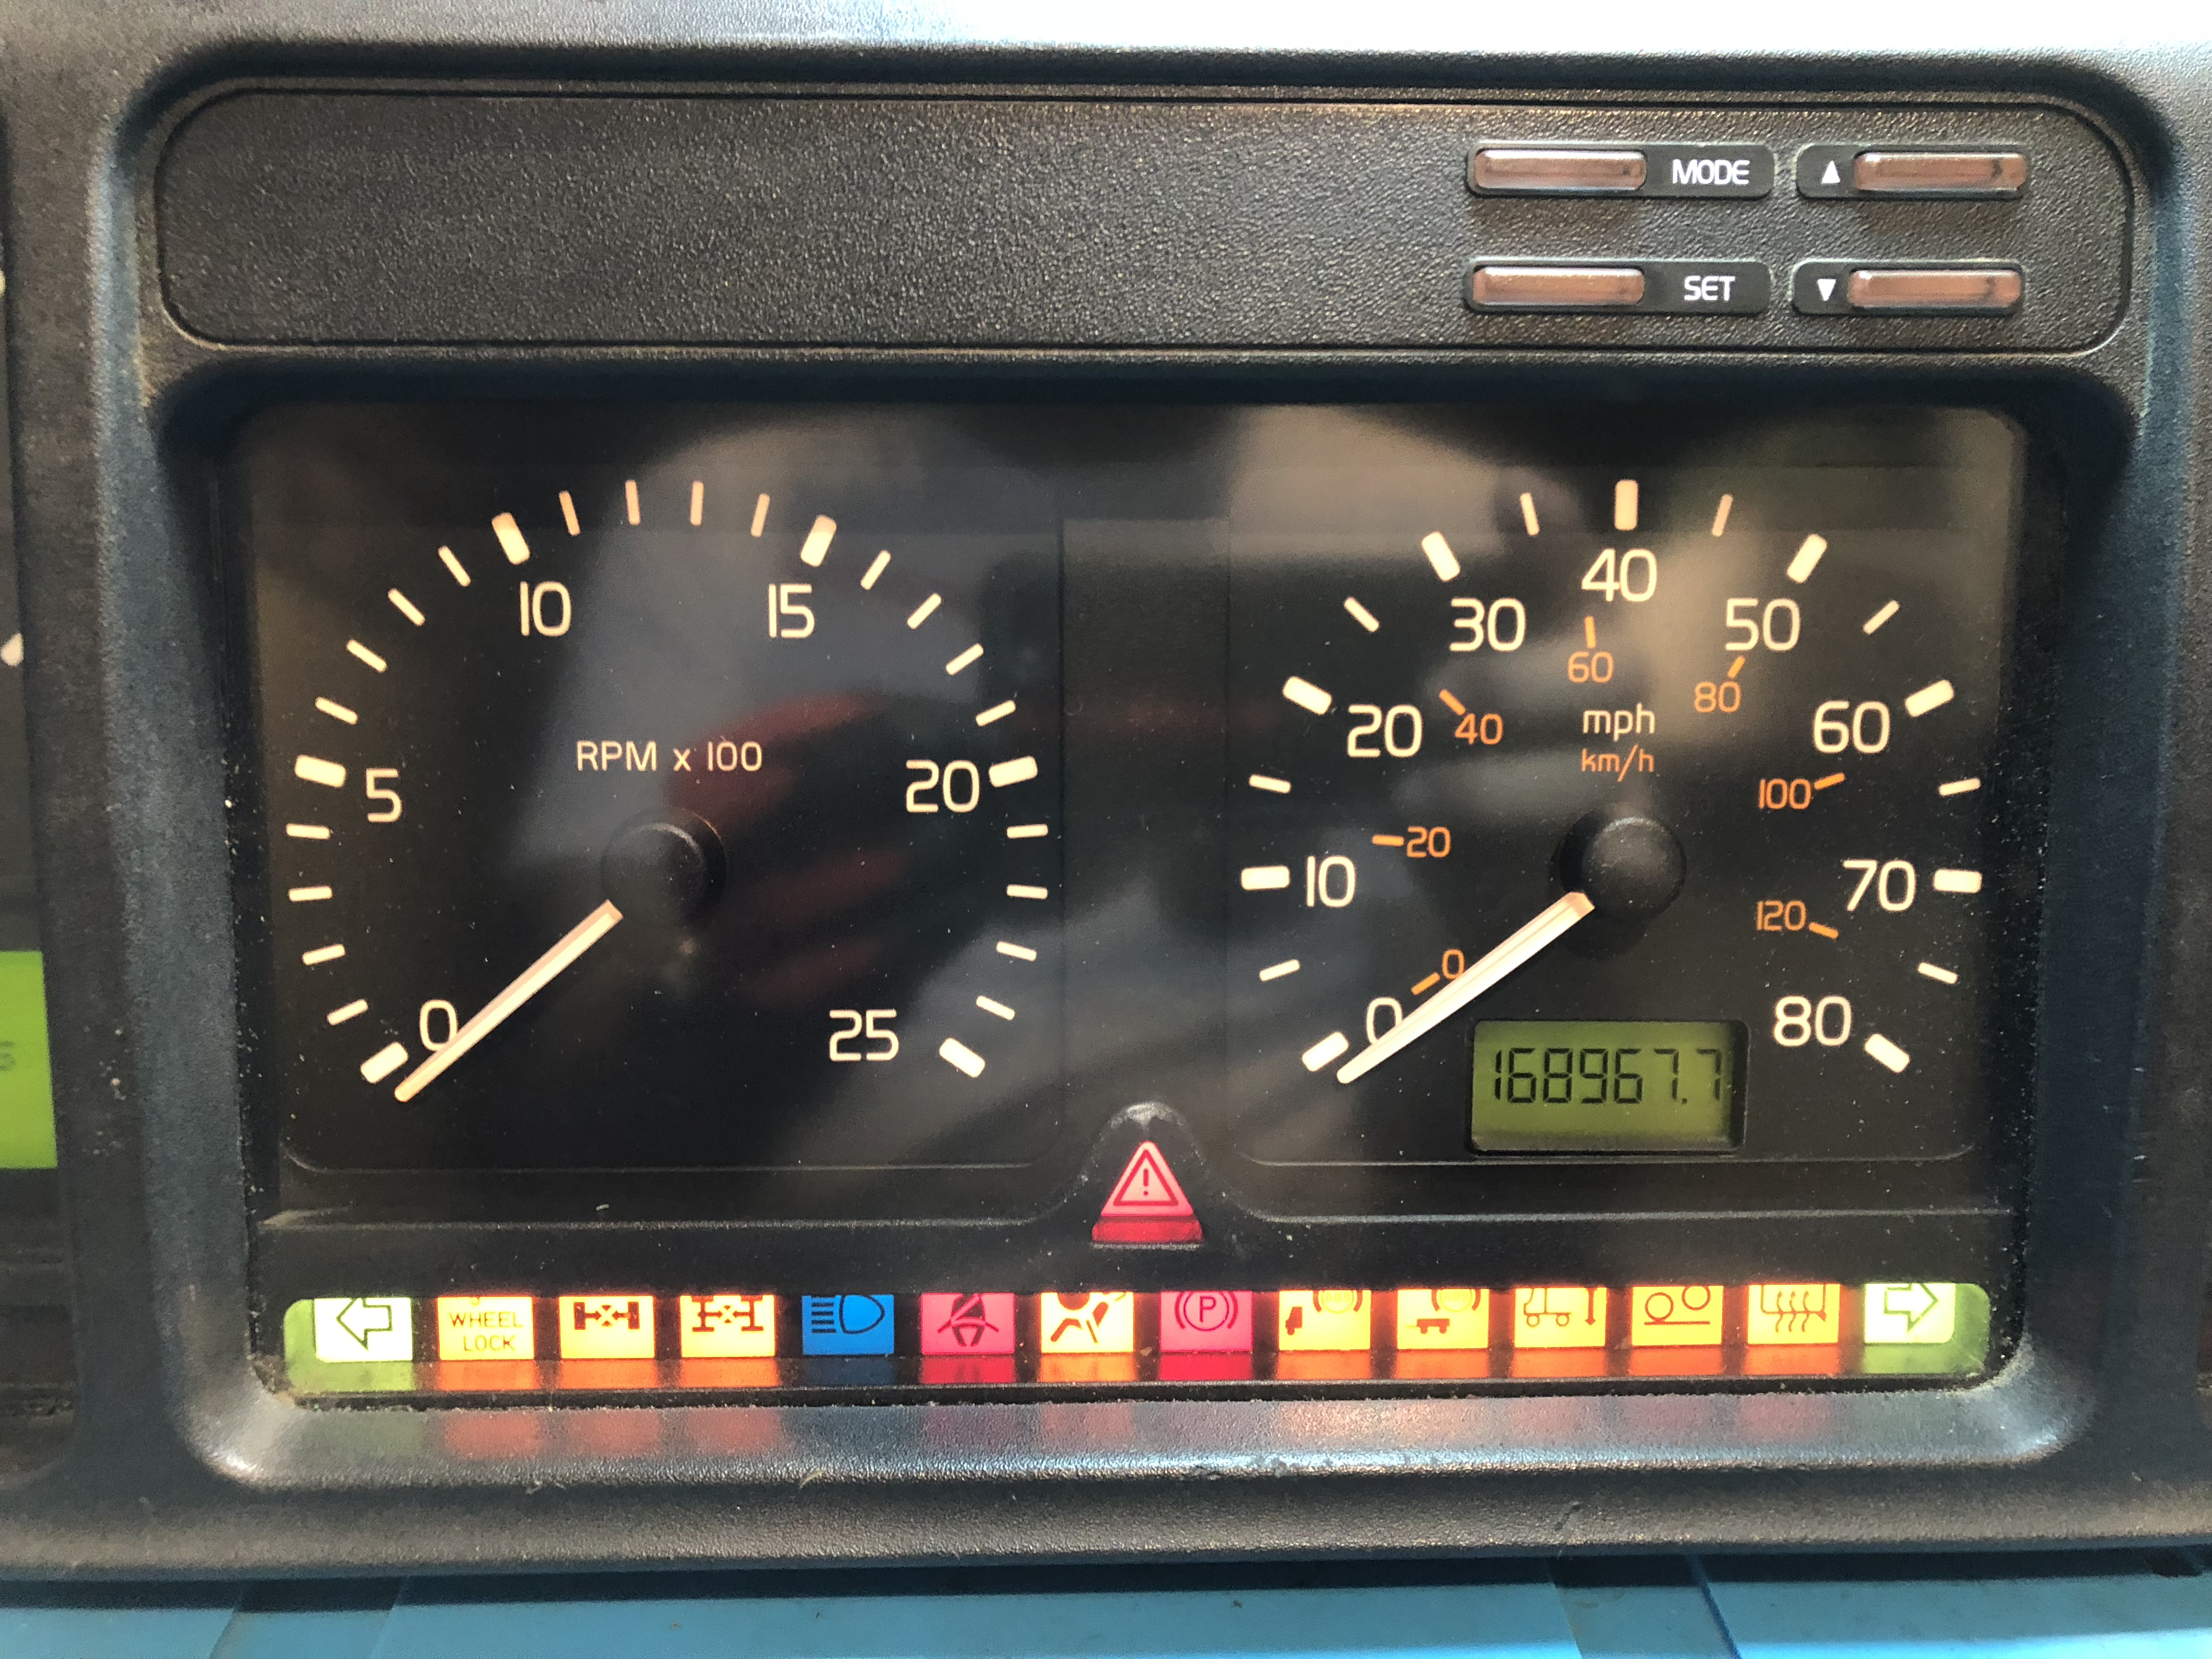 1998-1999 VOLVO VNL USED DASHBOARD INSTRUMENT CLUSTER FOR SALE (MPH)